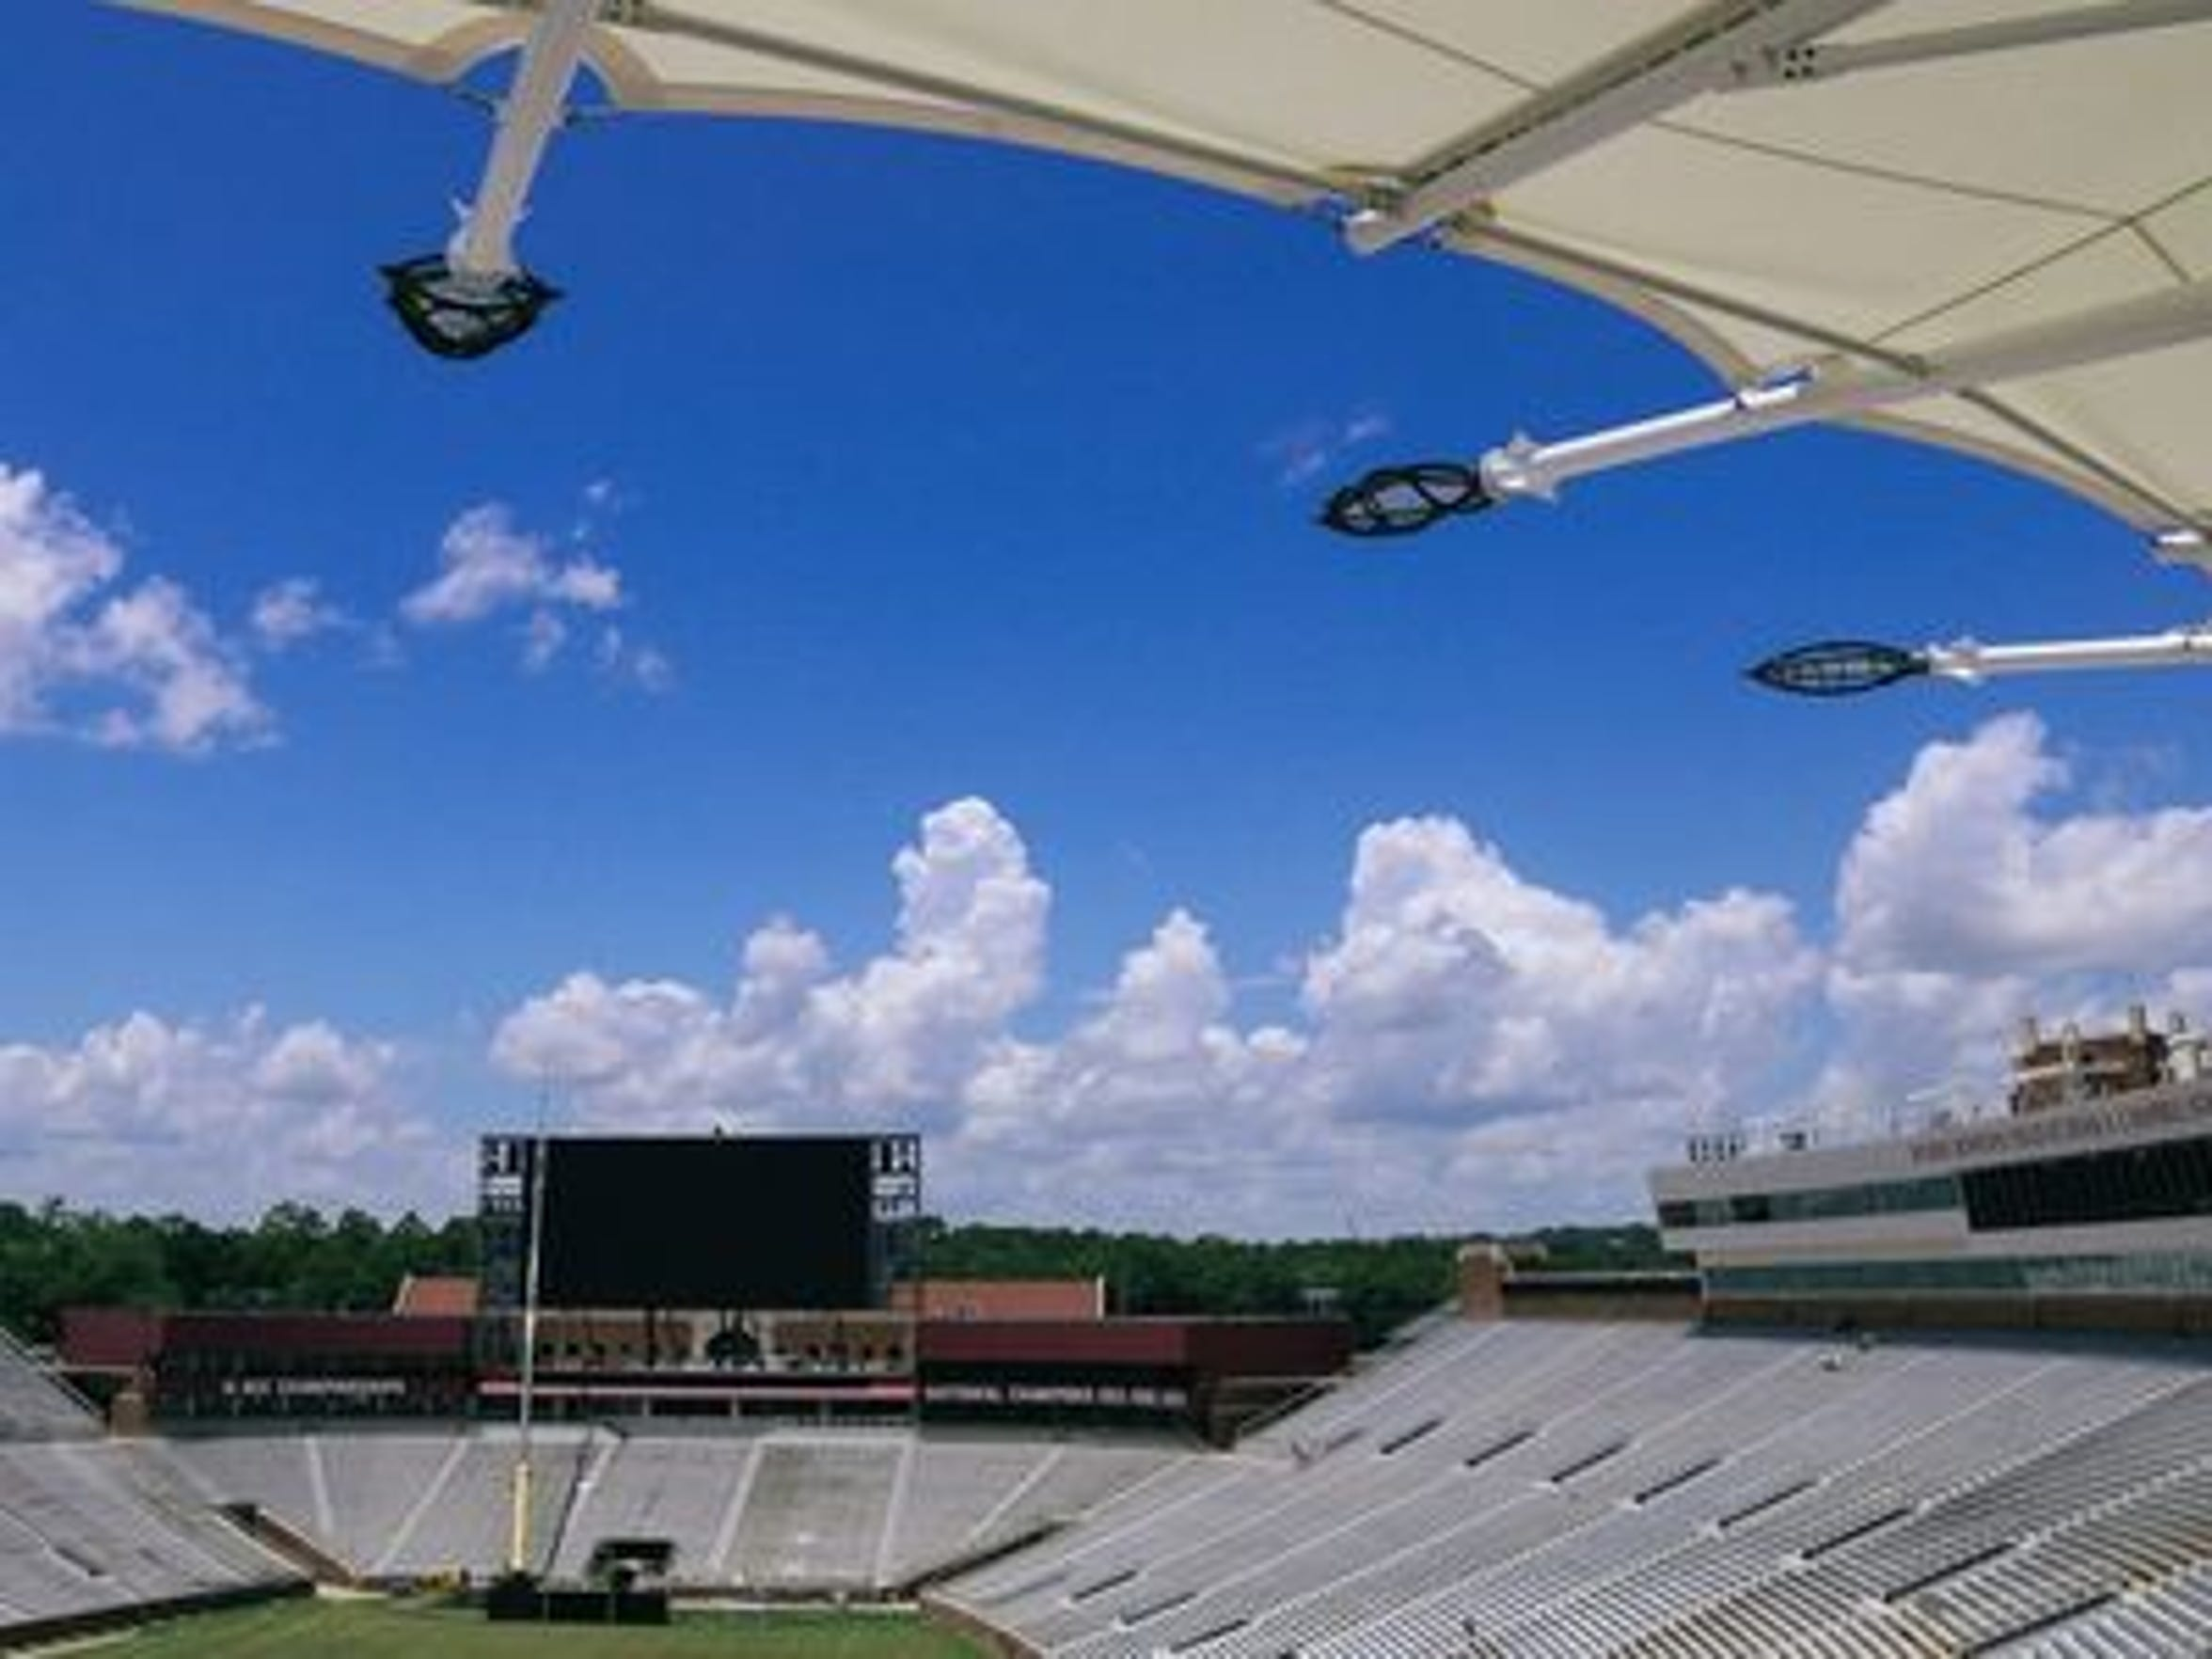 The renovations to Doak Campbell Stadium raised questions